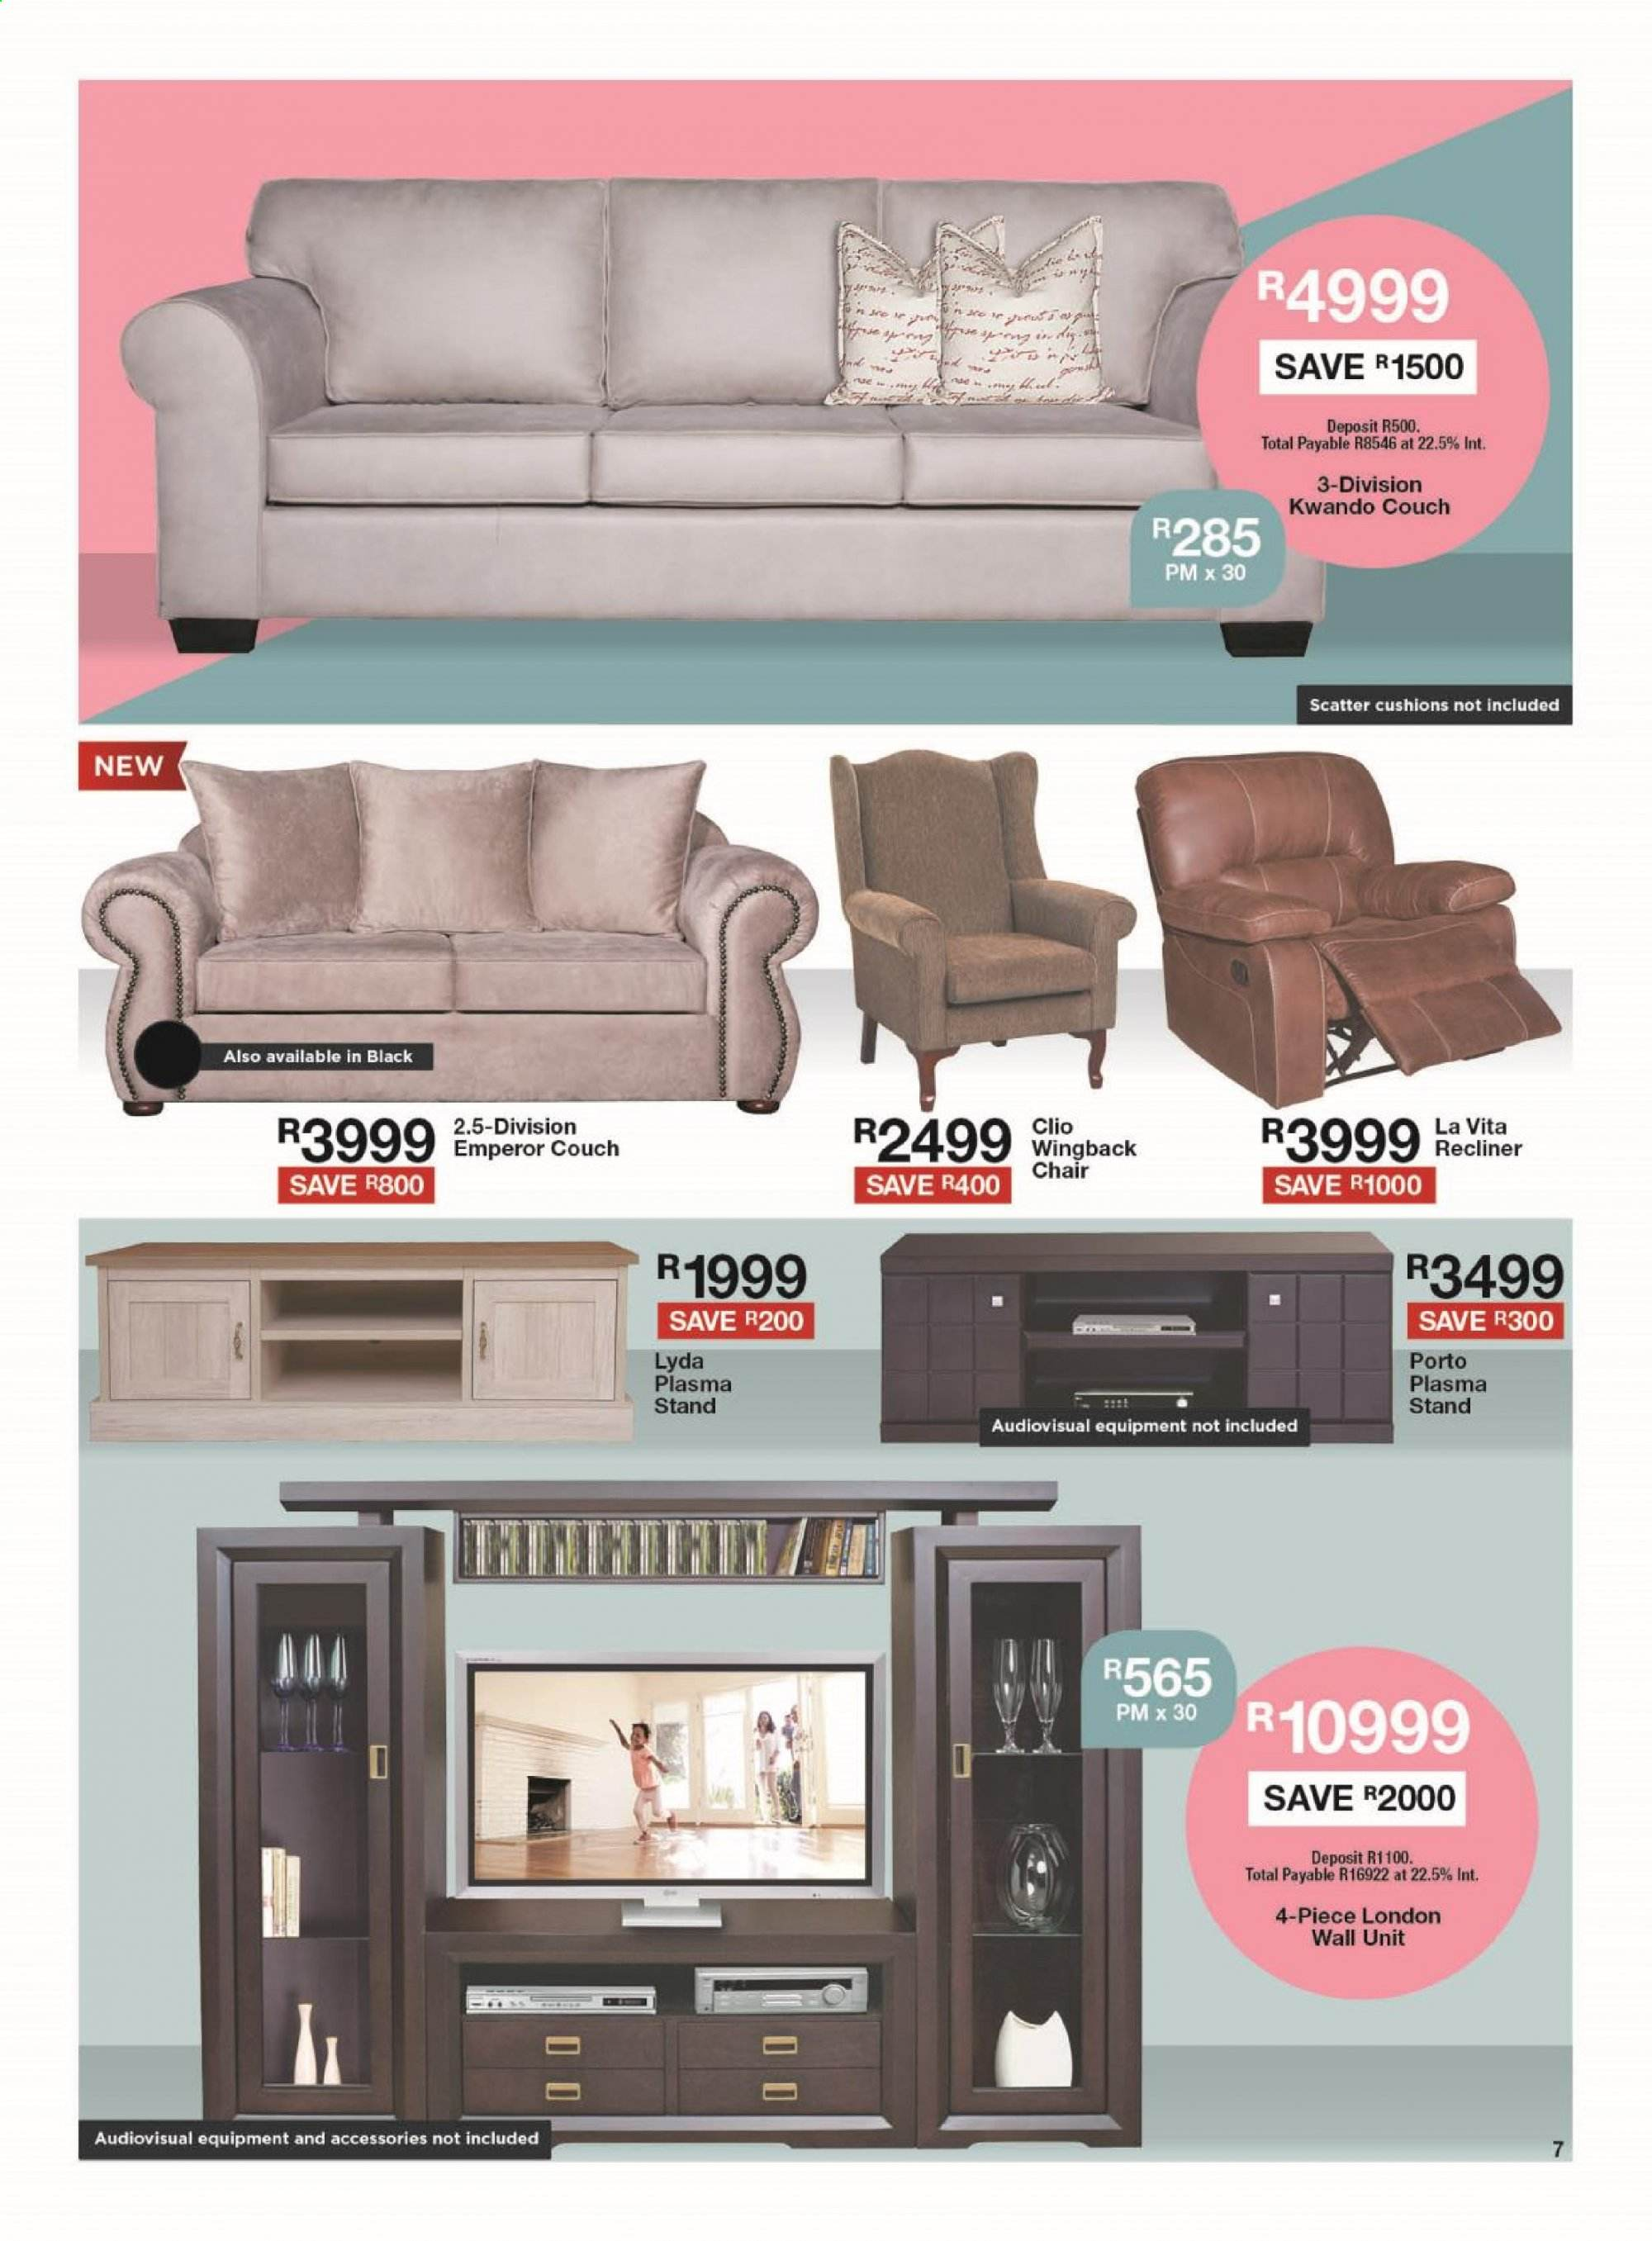 House & Home catalogue  - 08.09.2019 - 08.18.2019. Page 5.